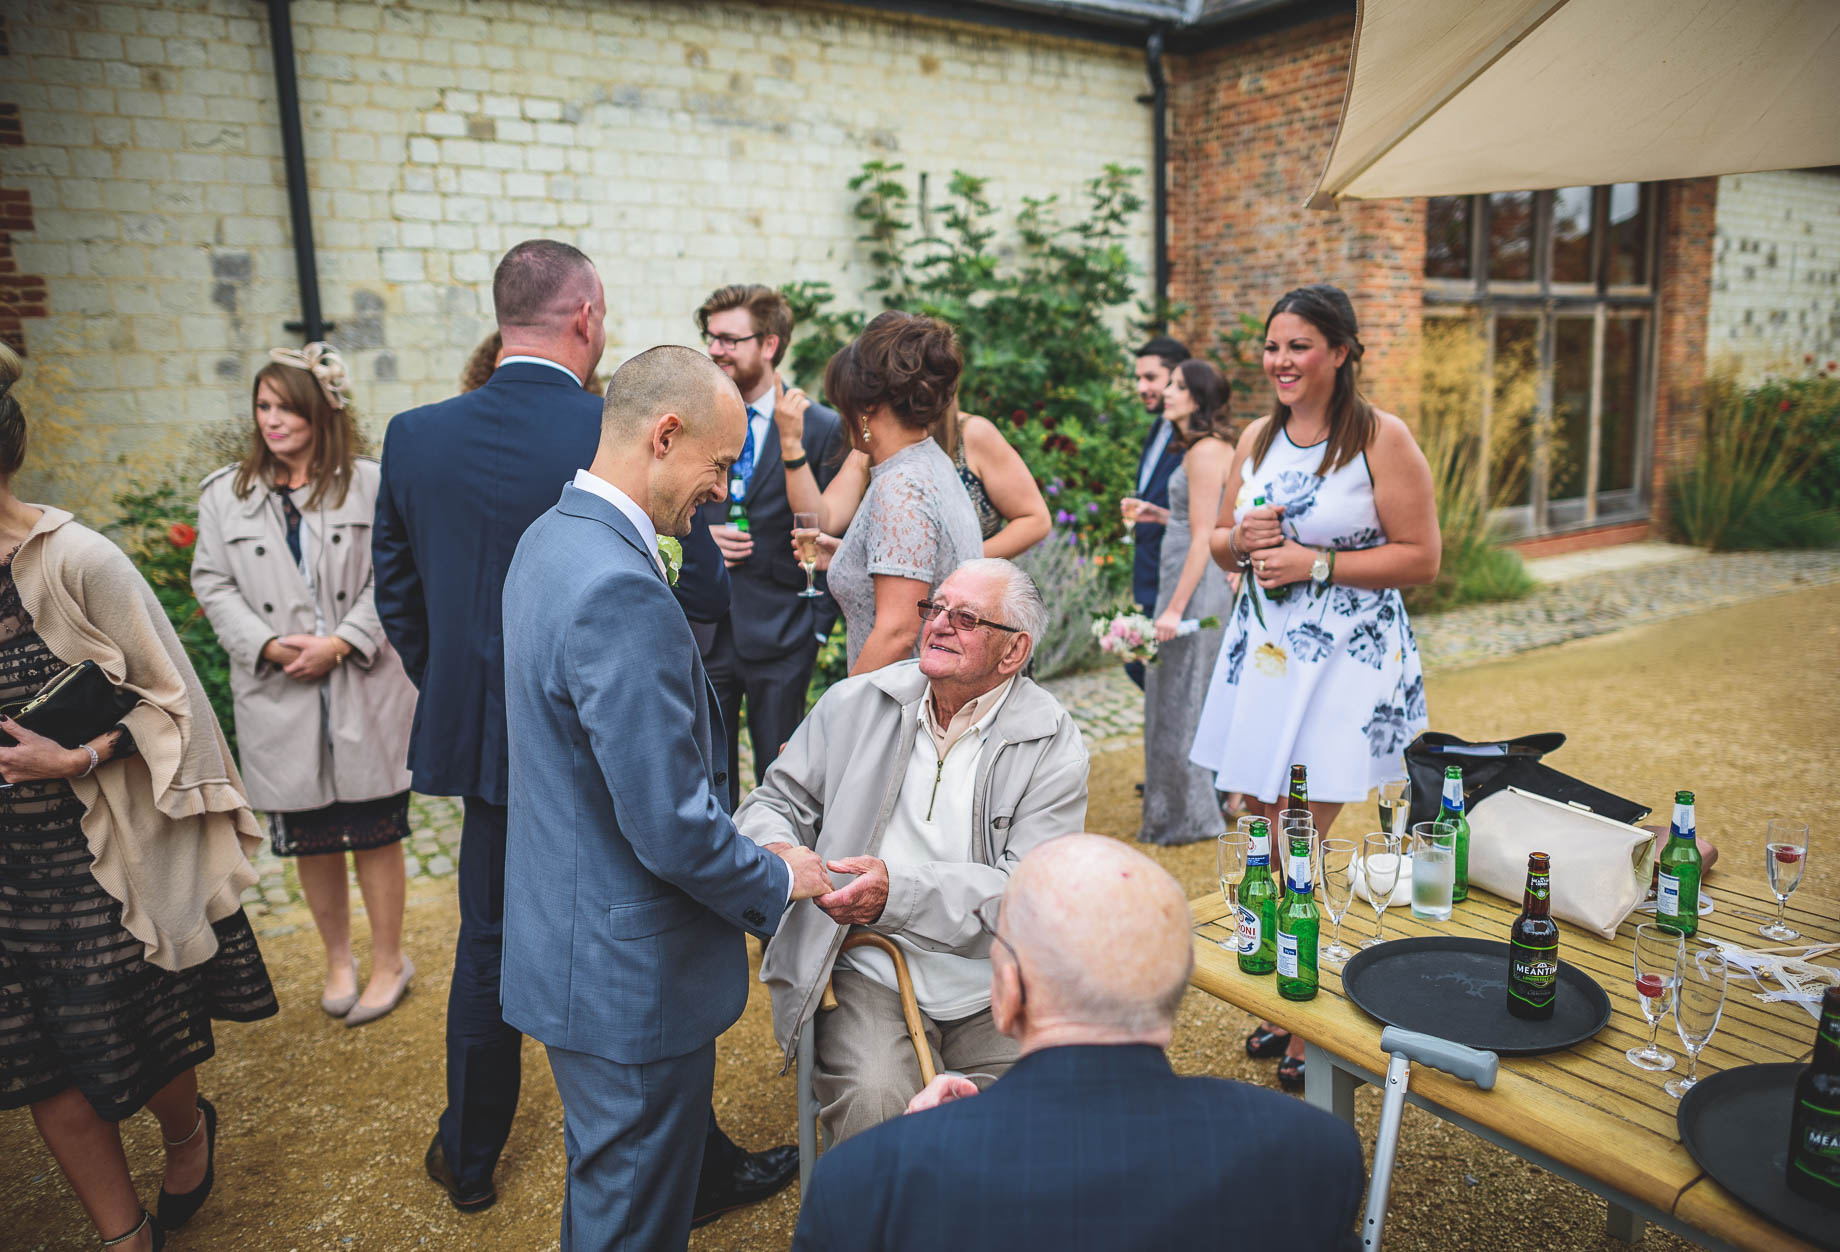 Bury Court Barn wedding photography - Guy Collier Photography - Karen and John (108 of 166)